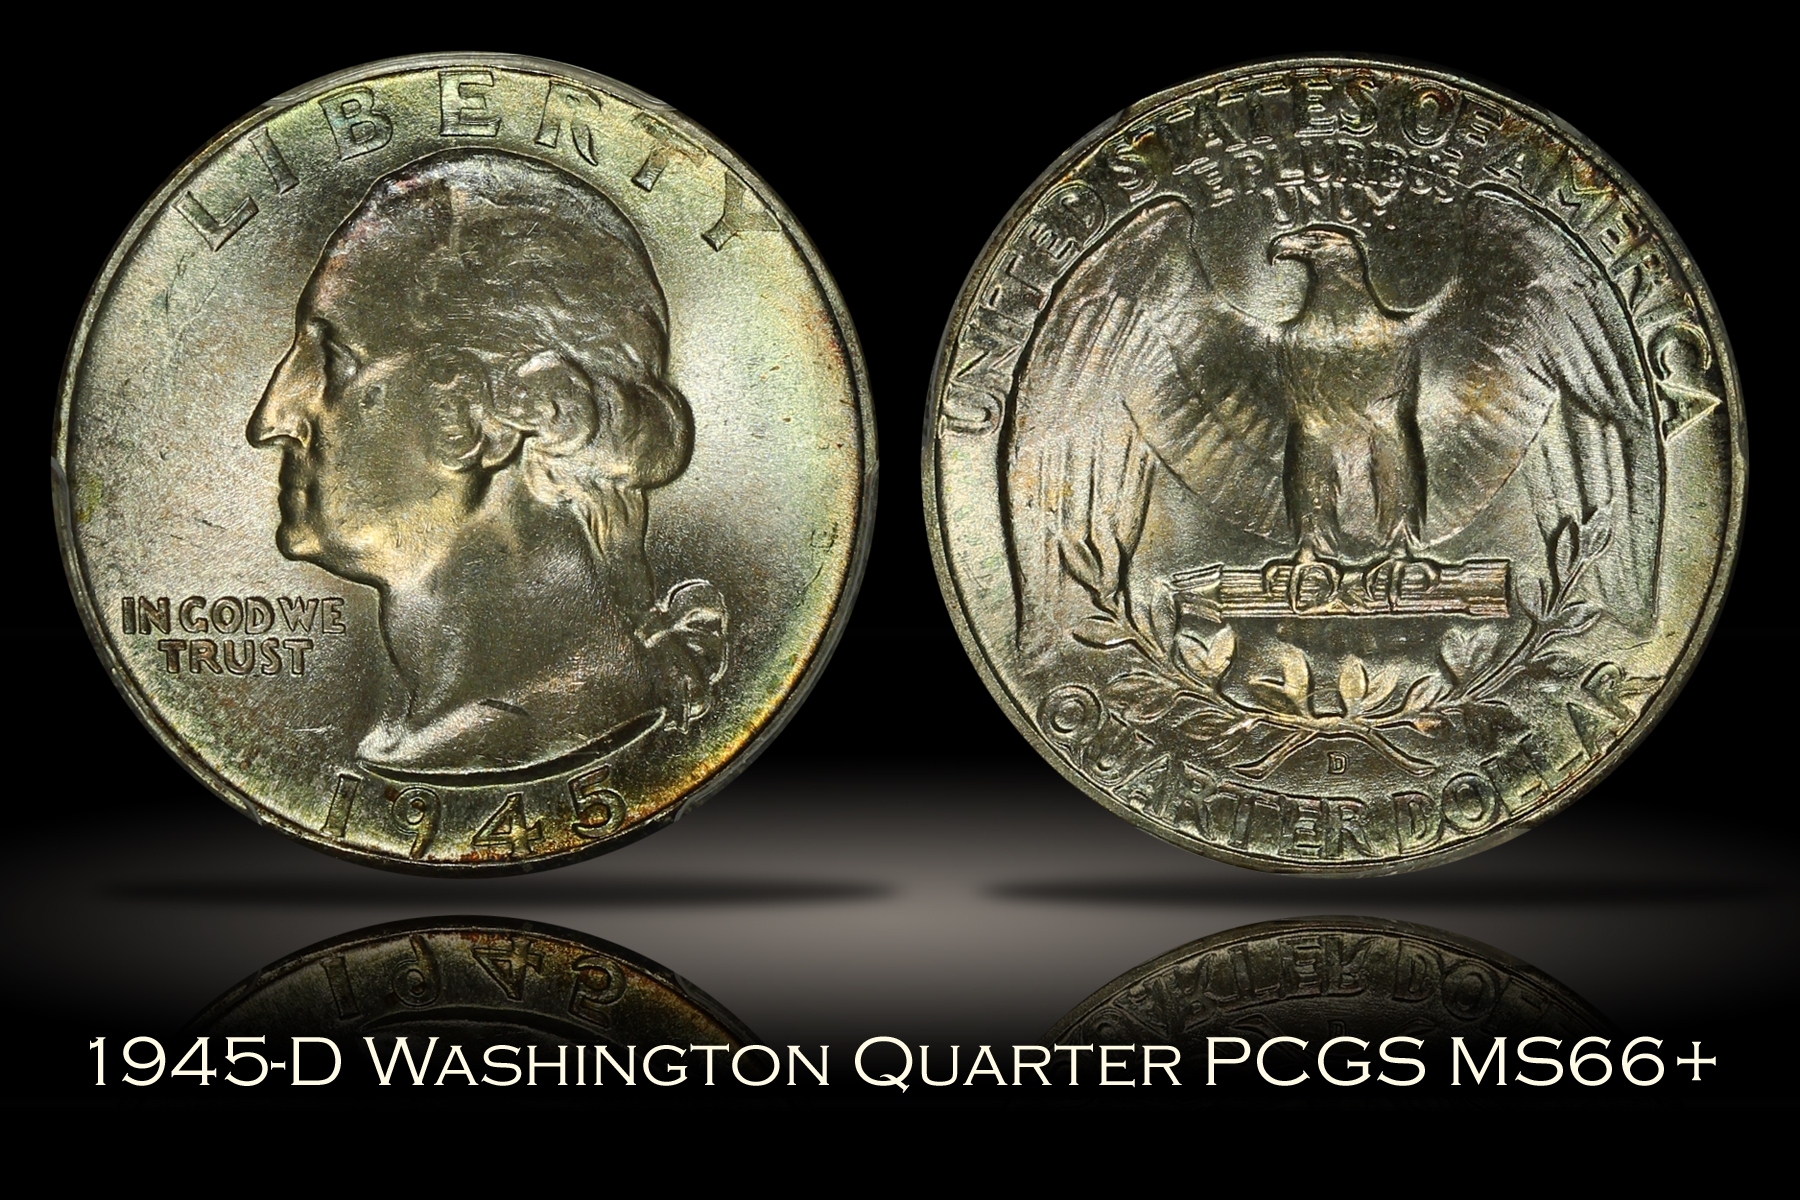 1945-D Washington Quarter PCGS MS66+